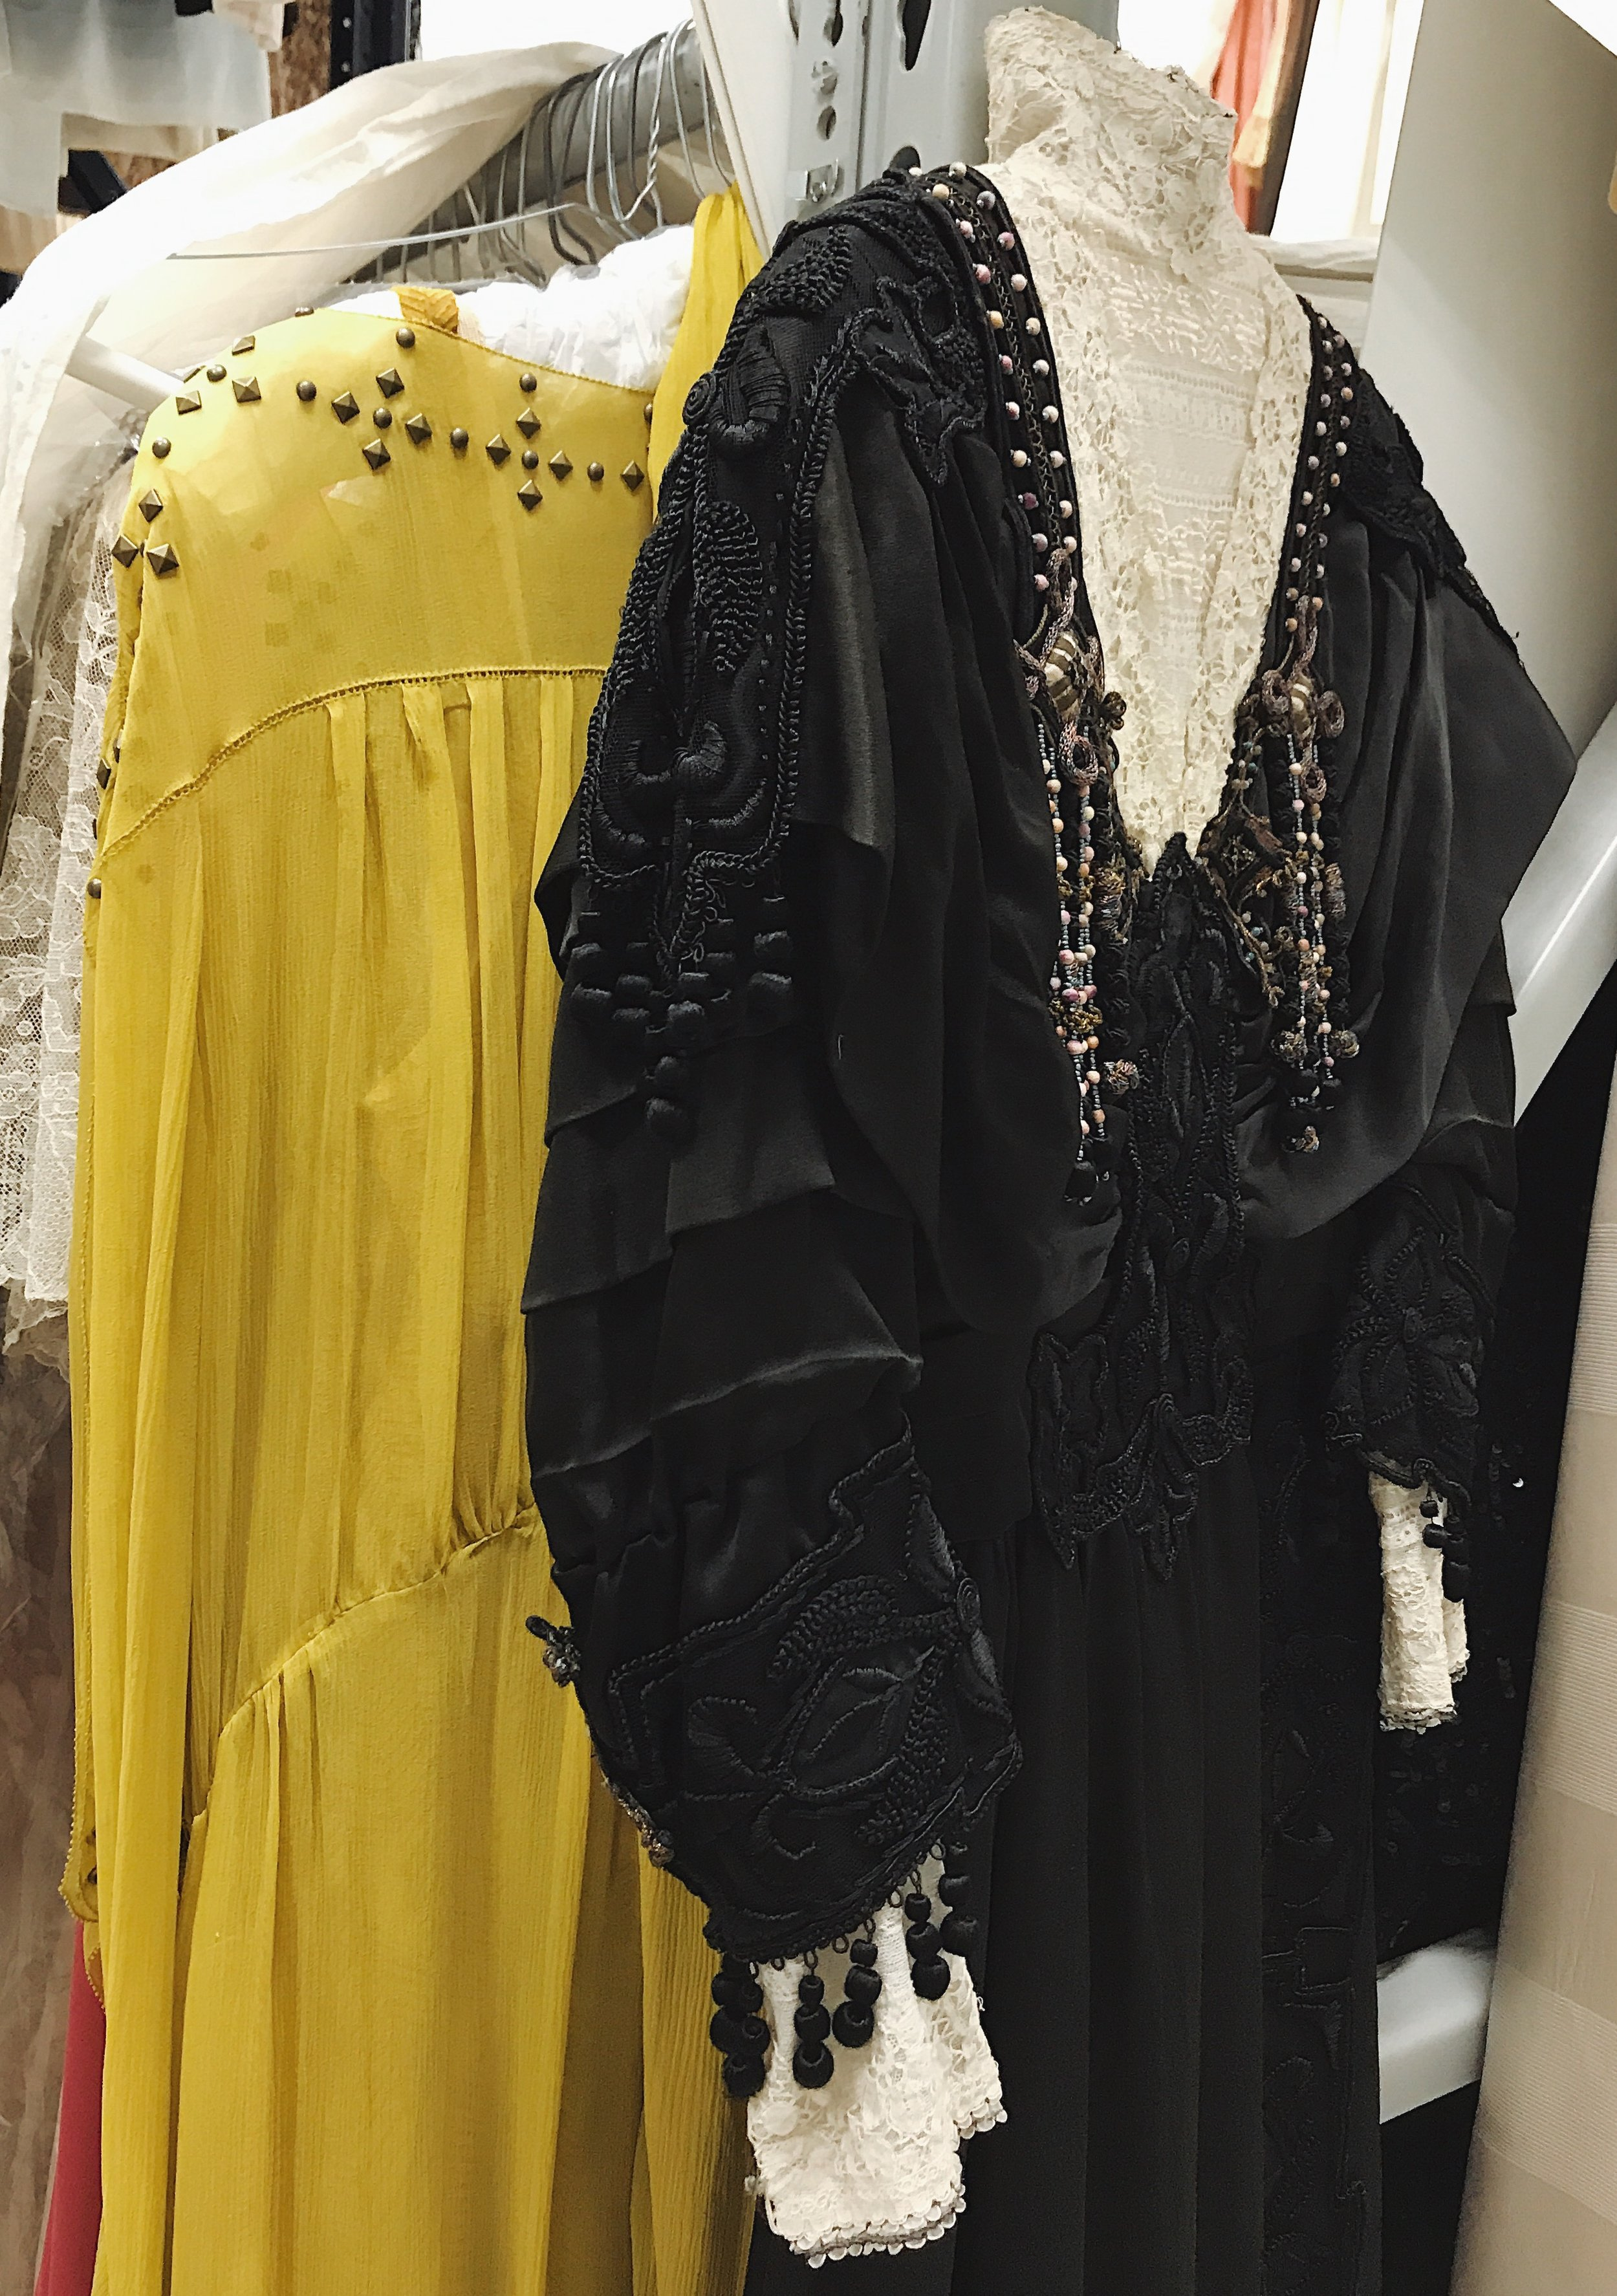 """Part of """"The Collection"""" at Western Costume Company.  Photo via  Finding Lost Angeles  (2018)."""